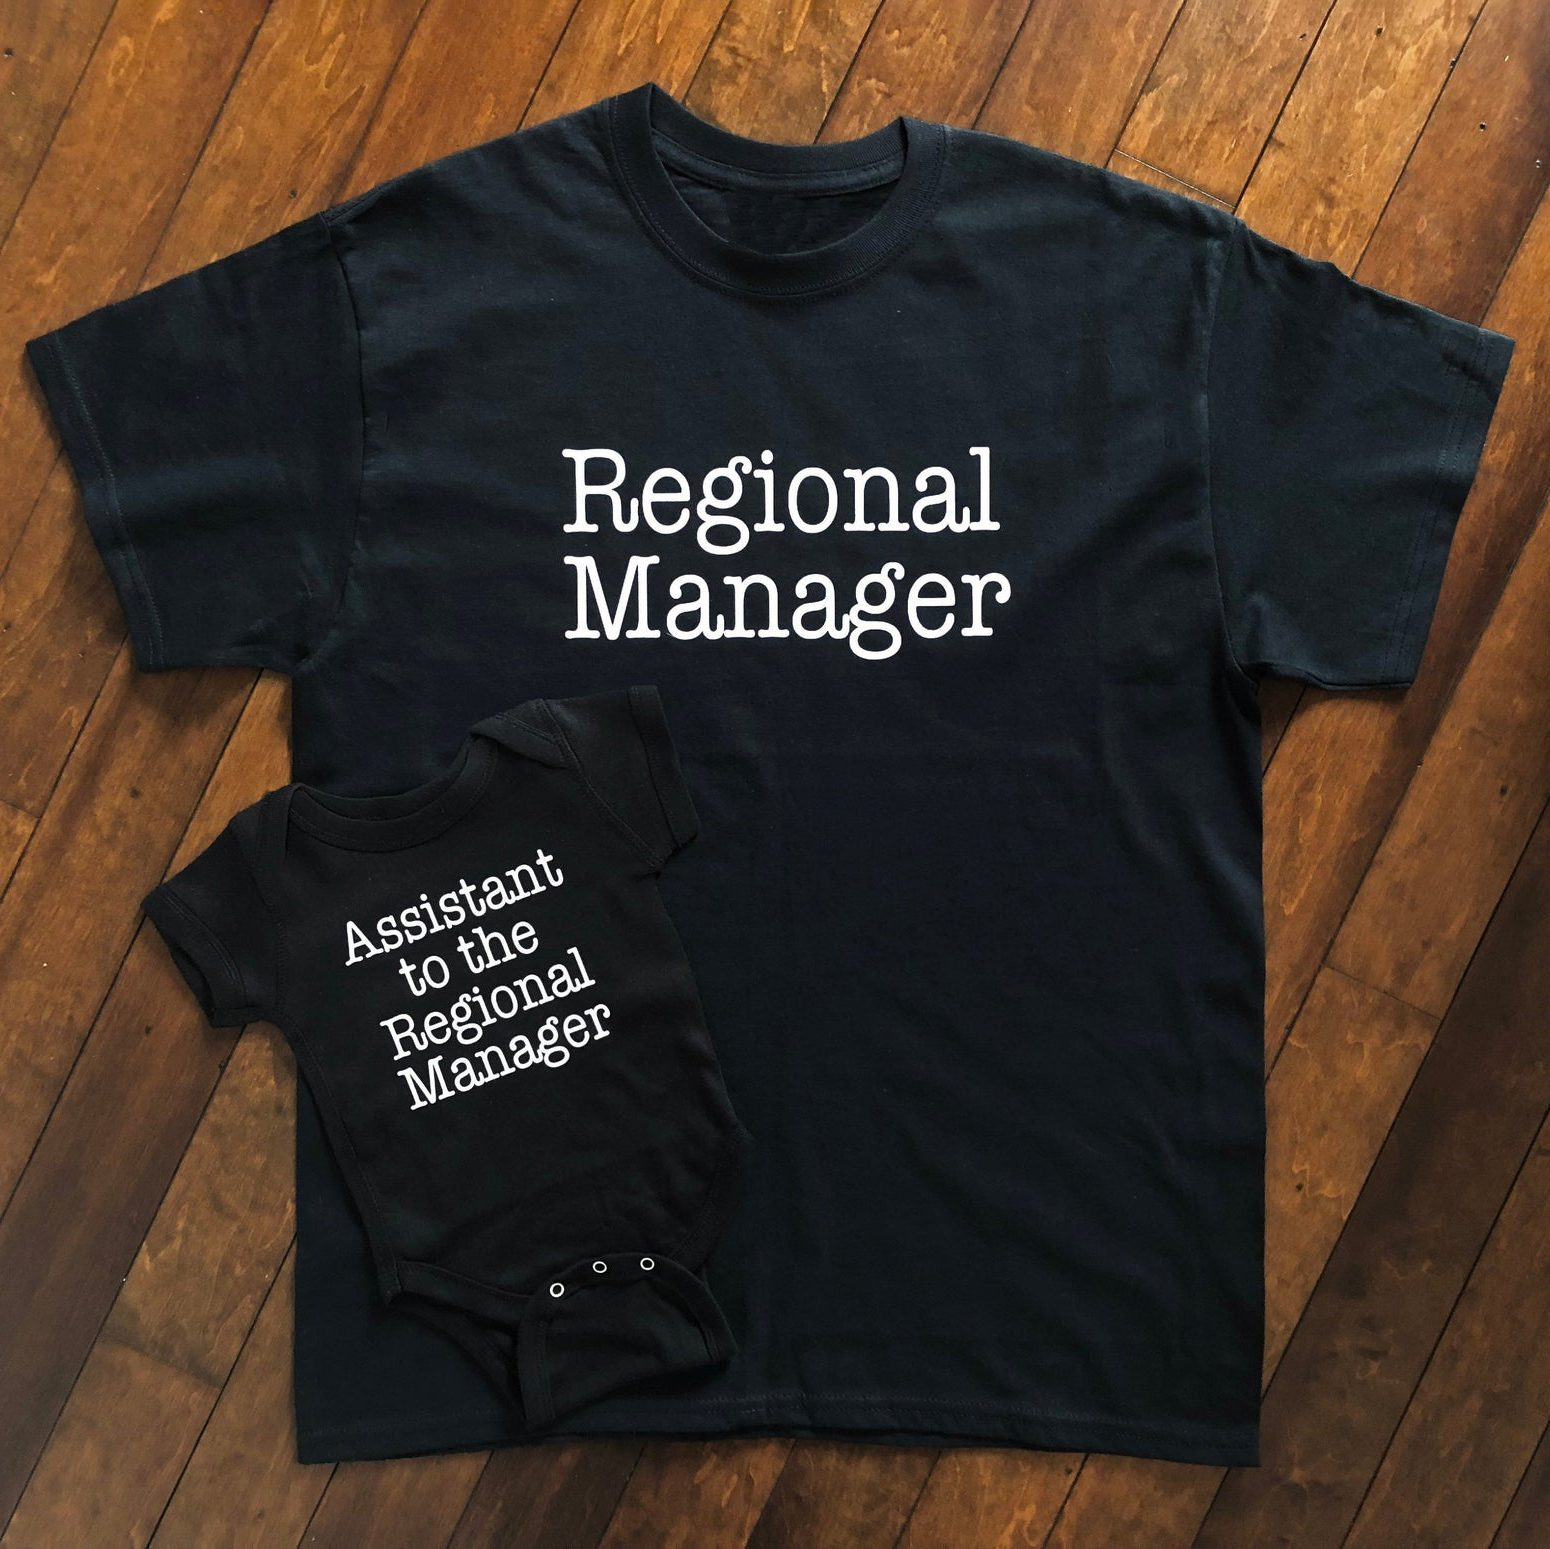 Regional Manager Shirt And Assistant To The Regional Manager Onesie